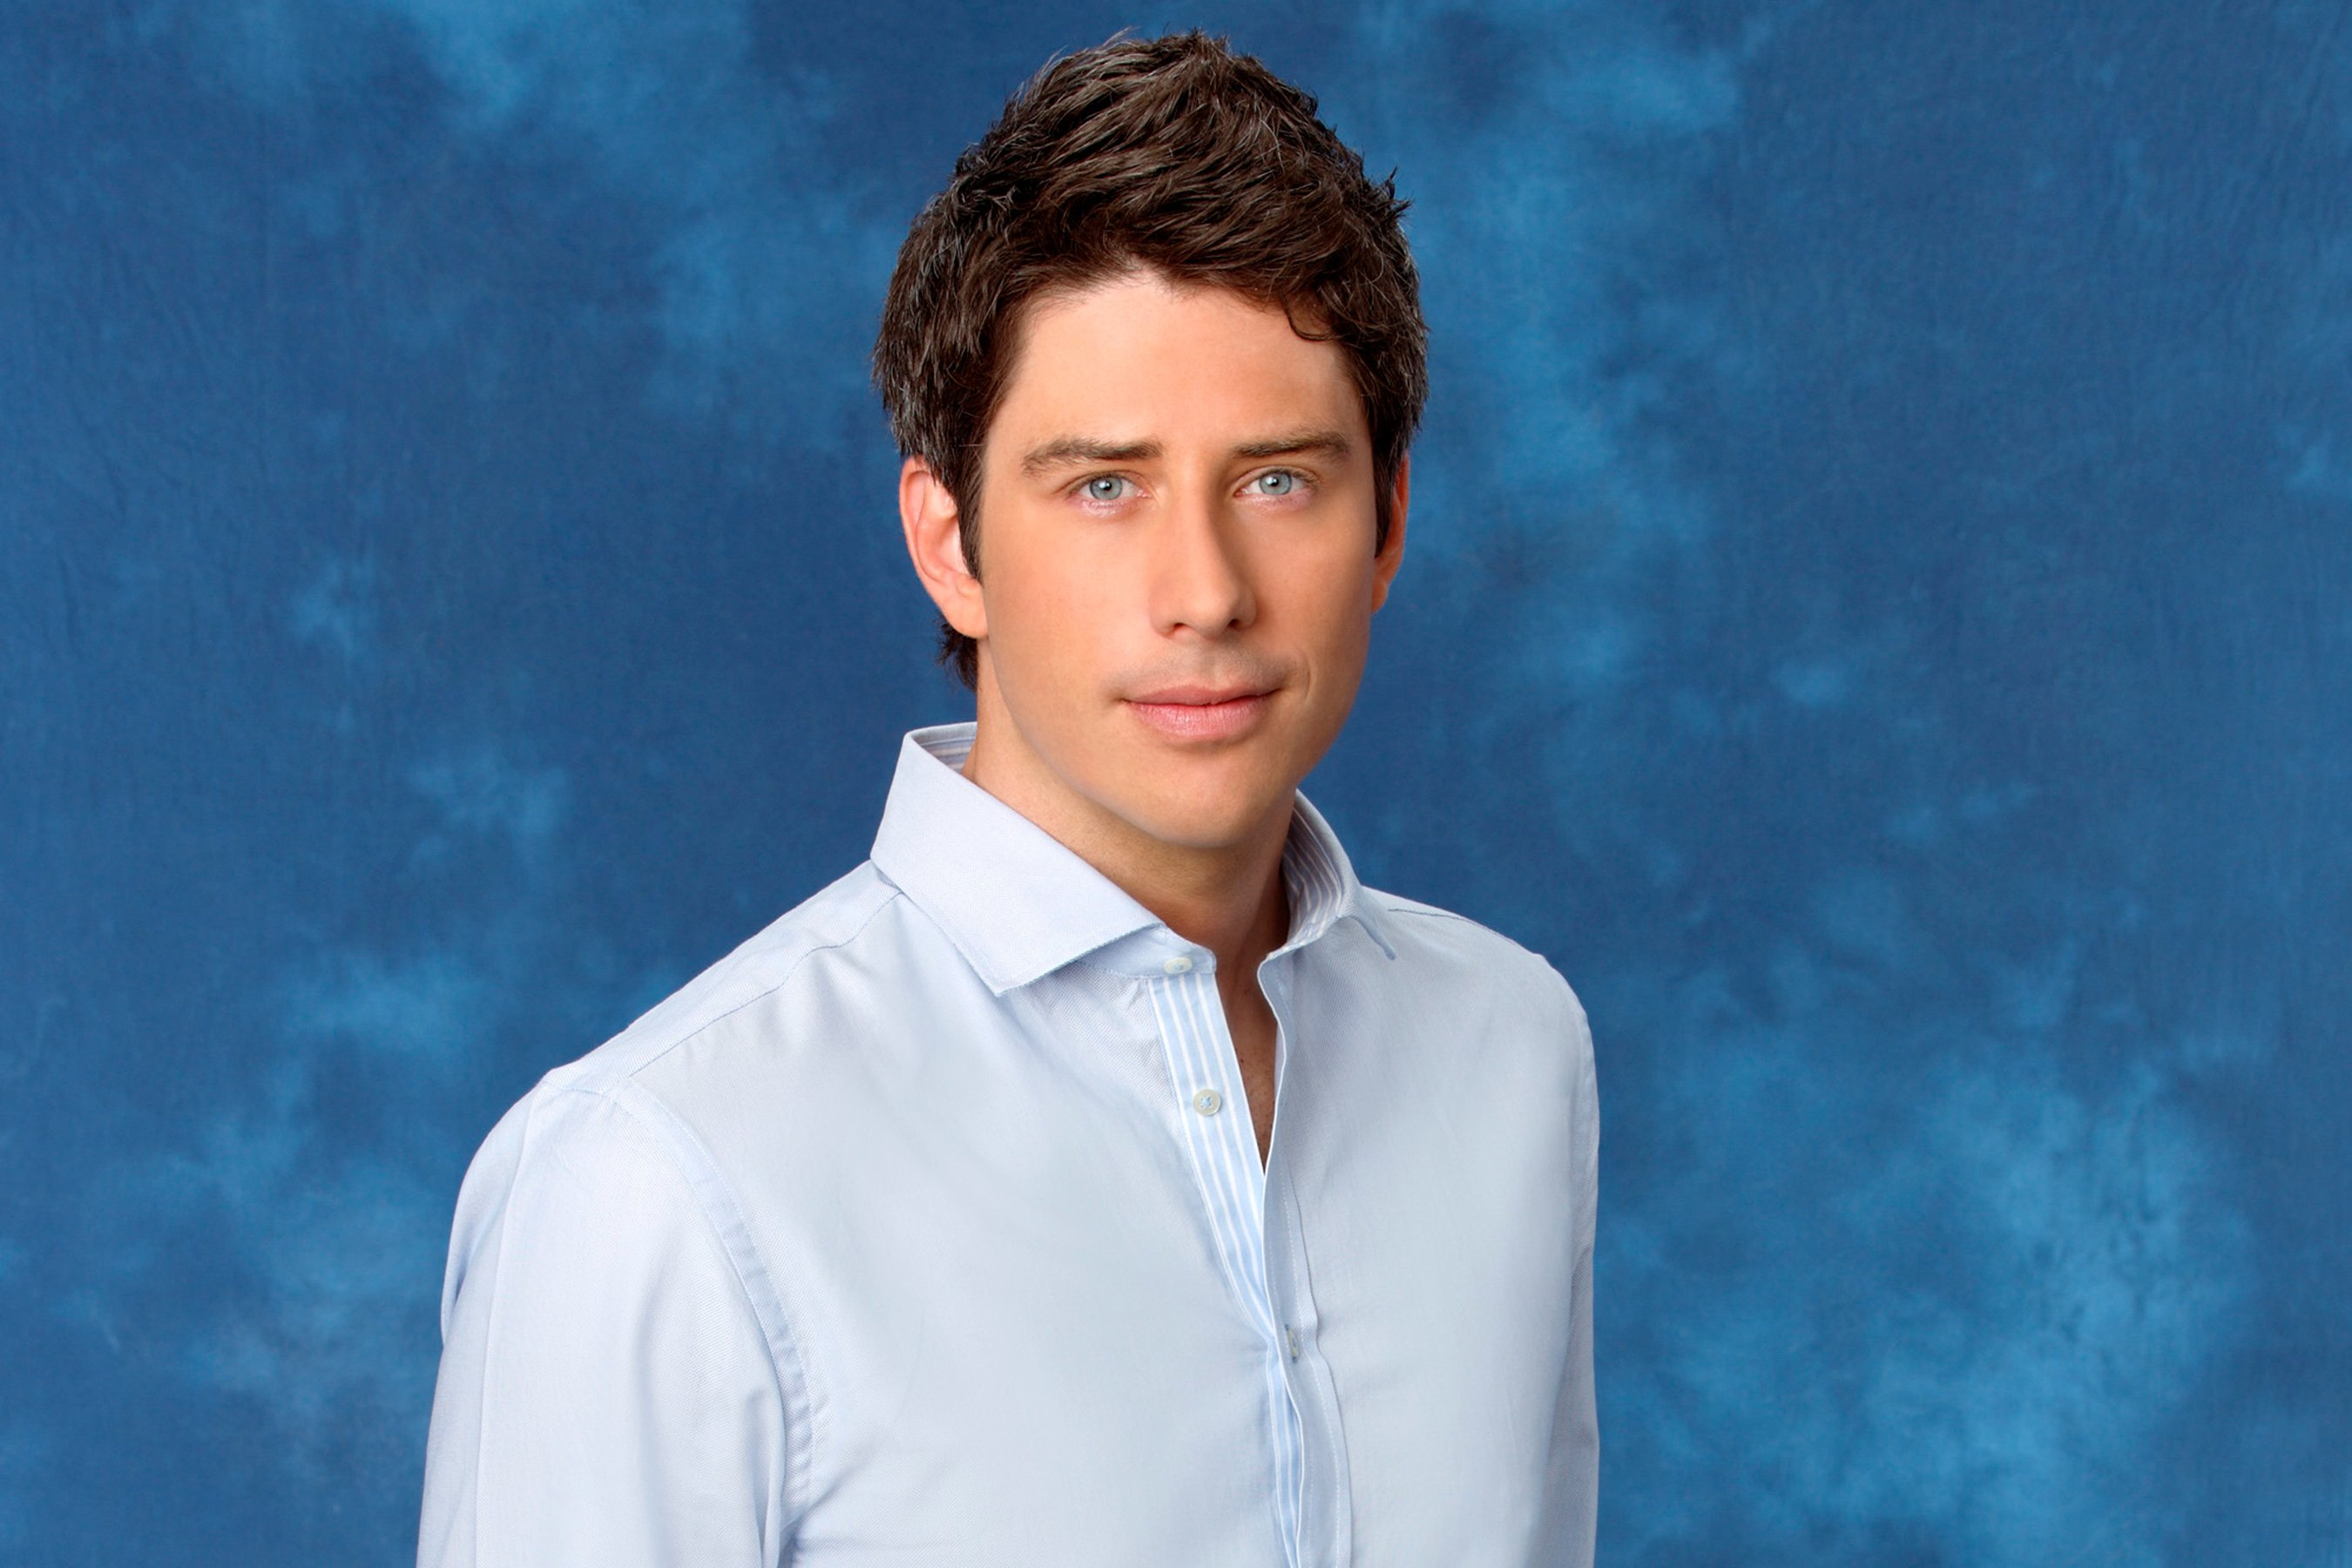 Arie Luyendyk Jr. poses in front of a blue background